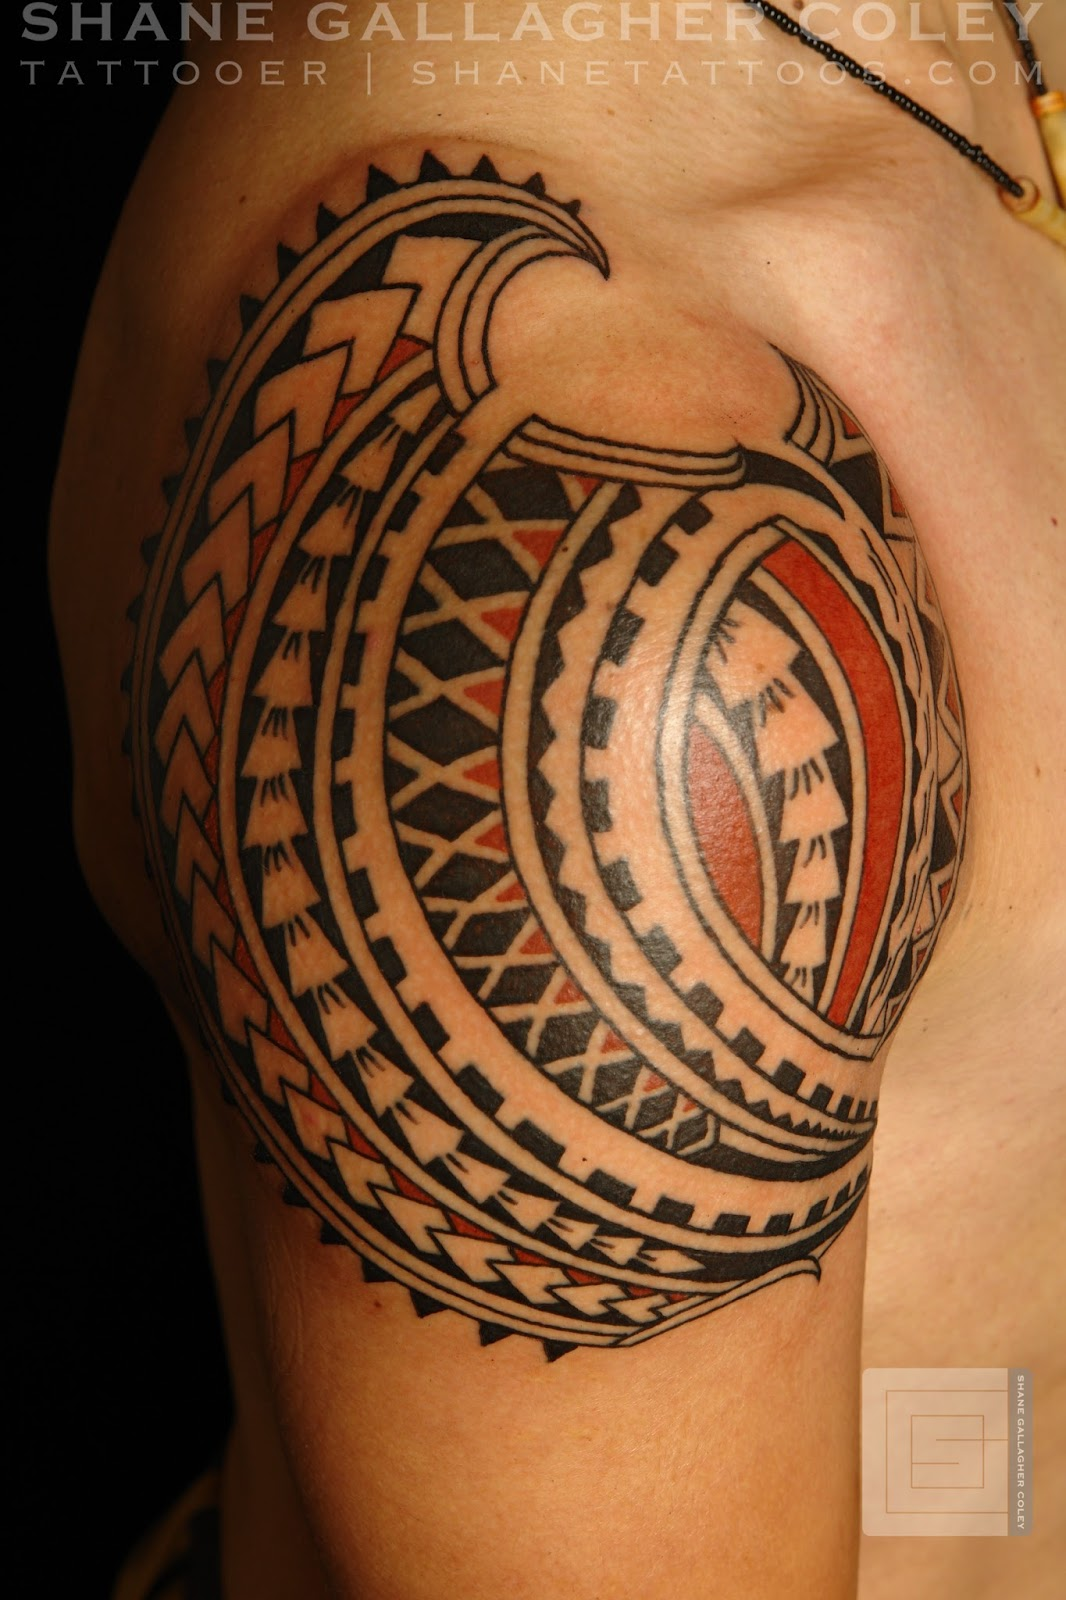 For the Polynesian shoulder tattoos for men thought